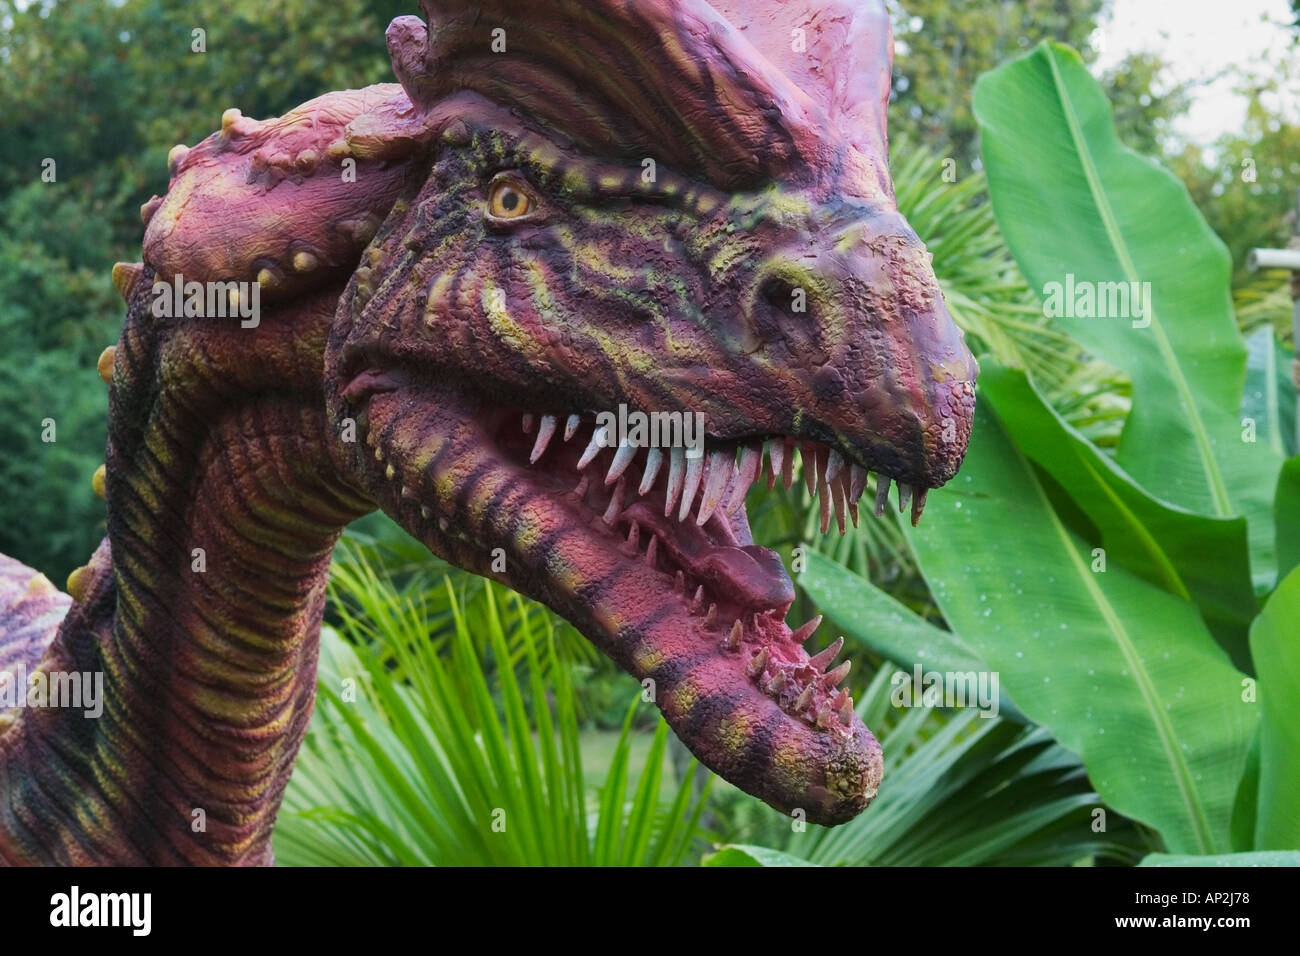 Dilophosaurus which means double crested reptile dinosaur from the early Jurassic period Goes to a length of 20 feet and w - Stock Image